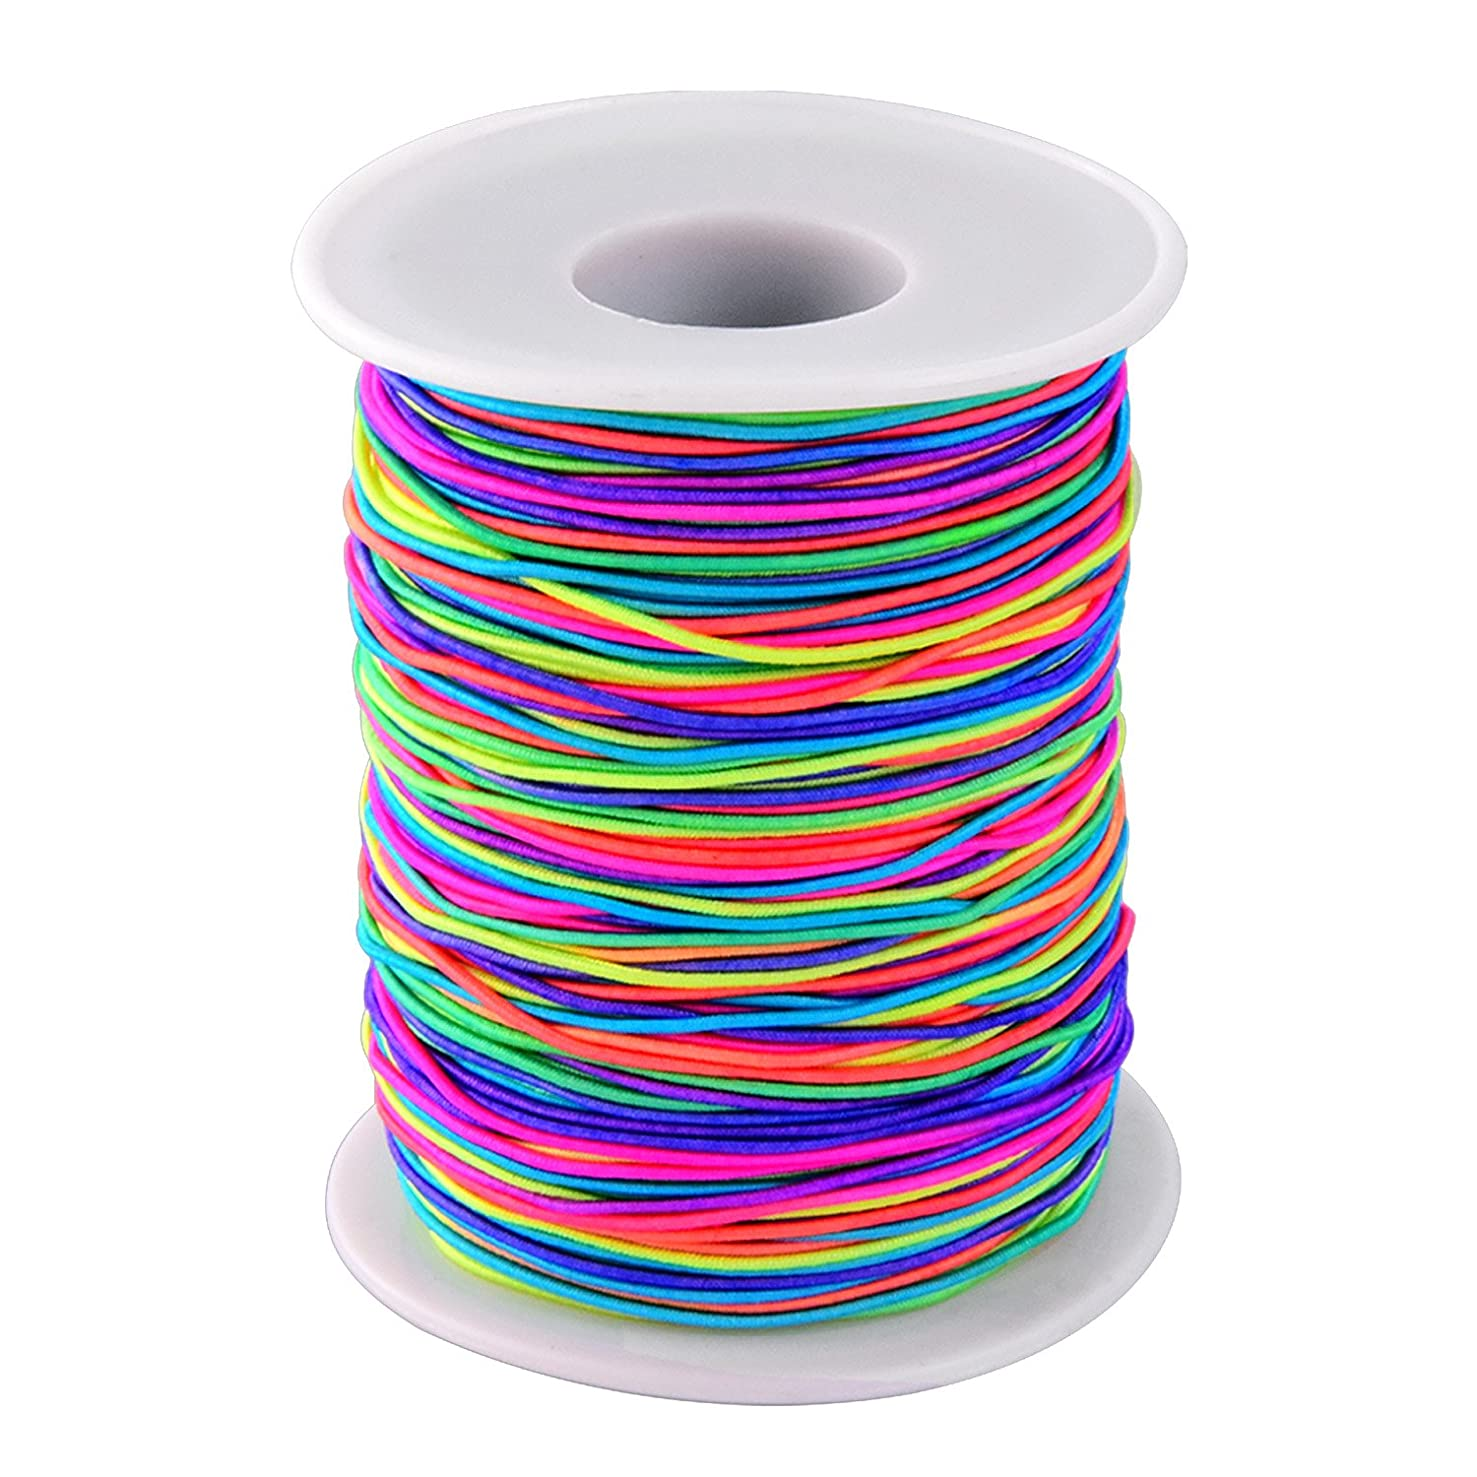 Outus 1 mm Elastic Cord Beading Threads Stretch String Fabric Crafting Cords for Jewelry Making (Rainbow, 100 m)